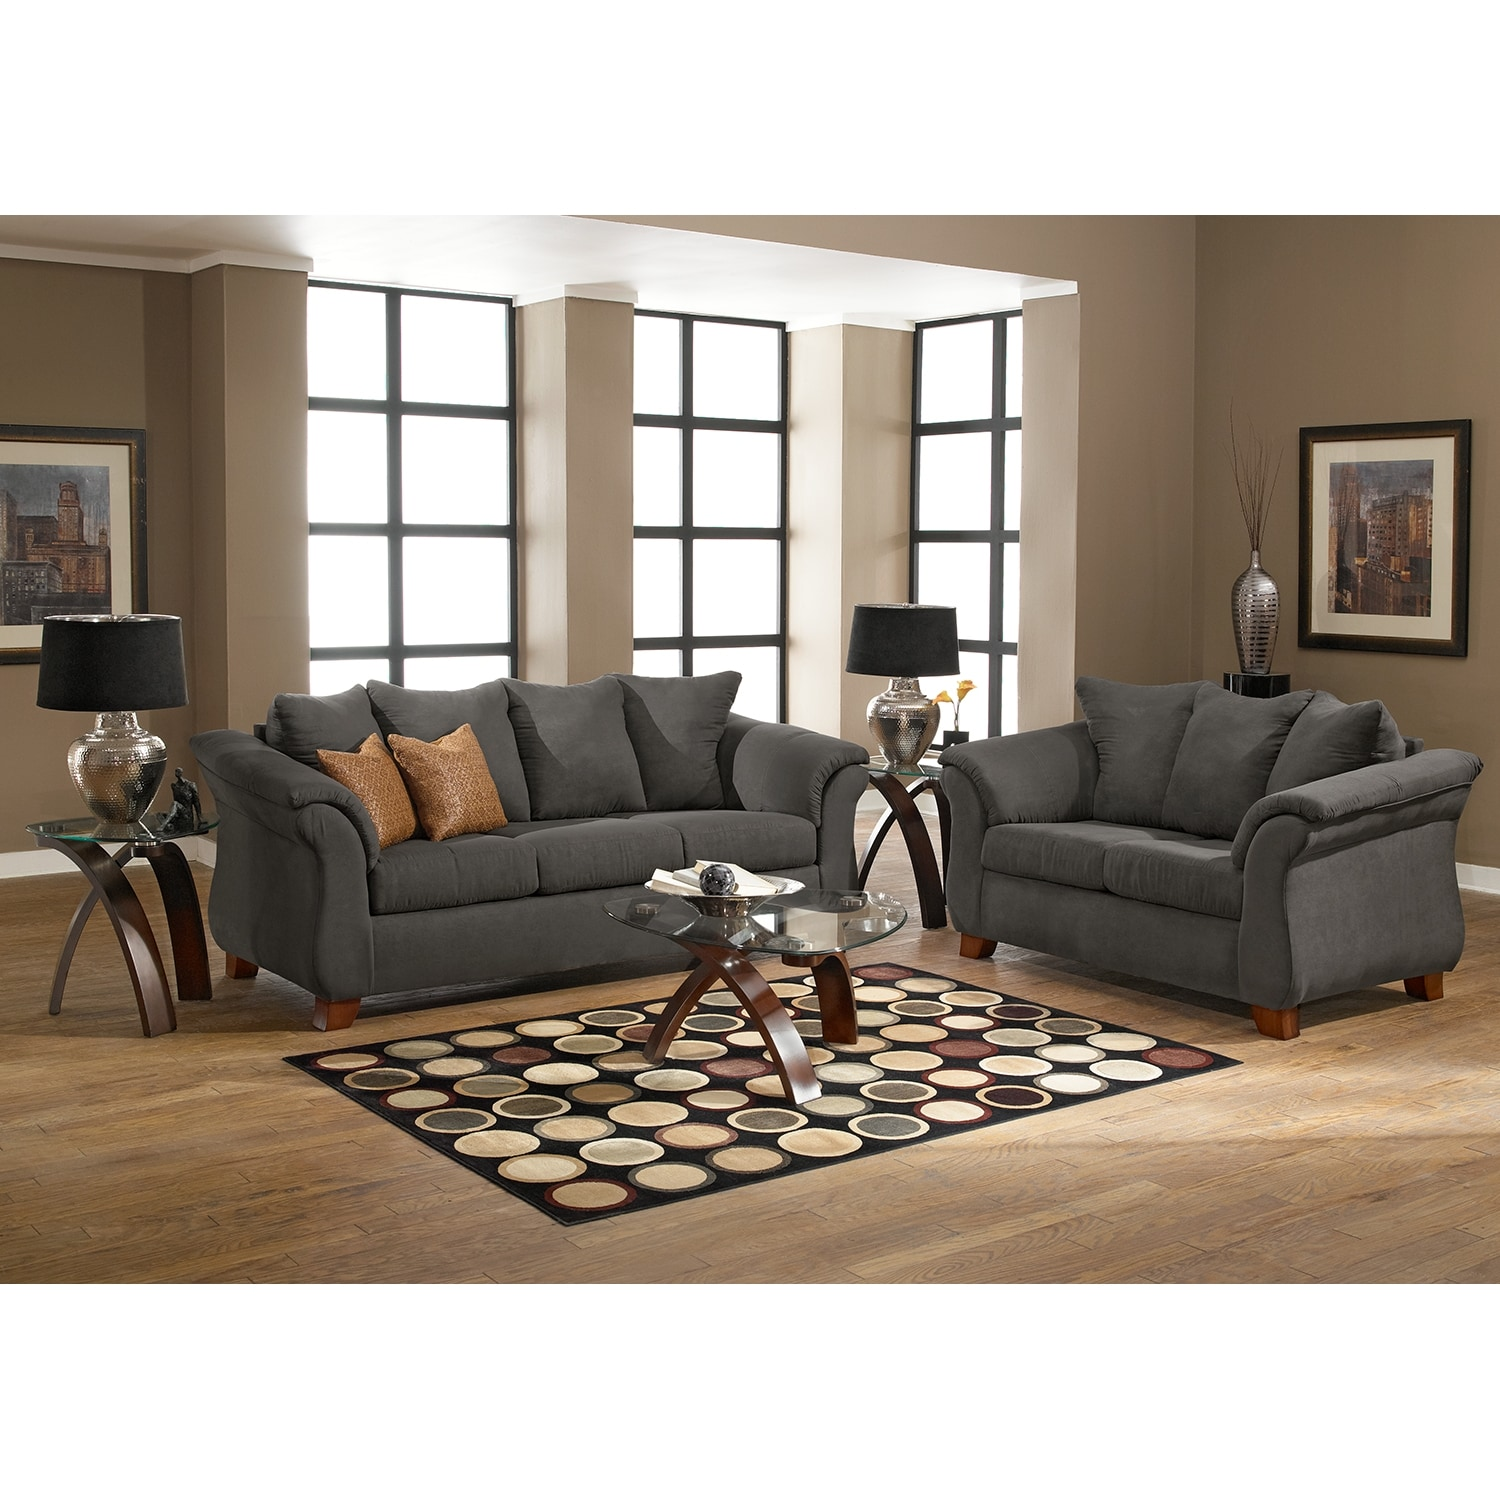 Sofas And Loveseats Sets